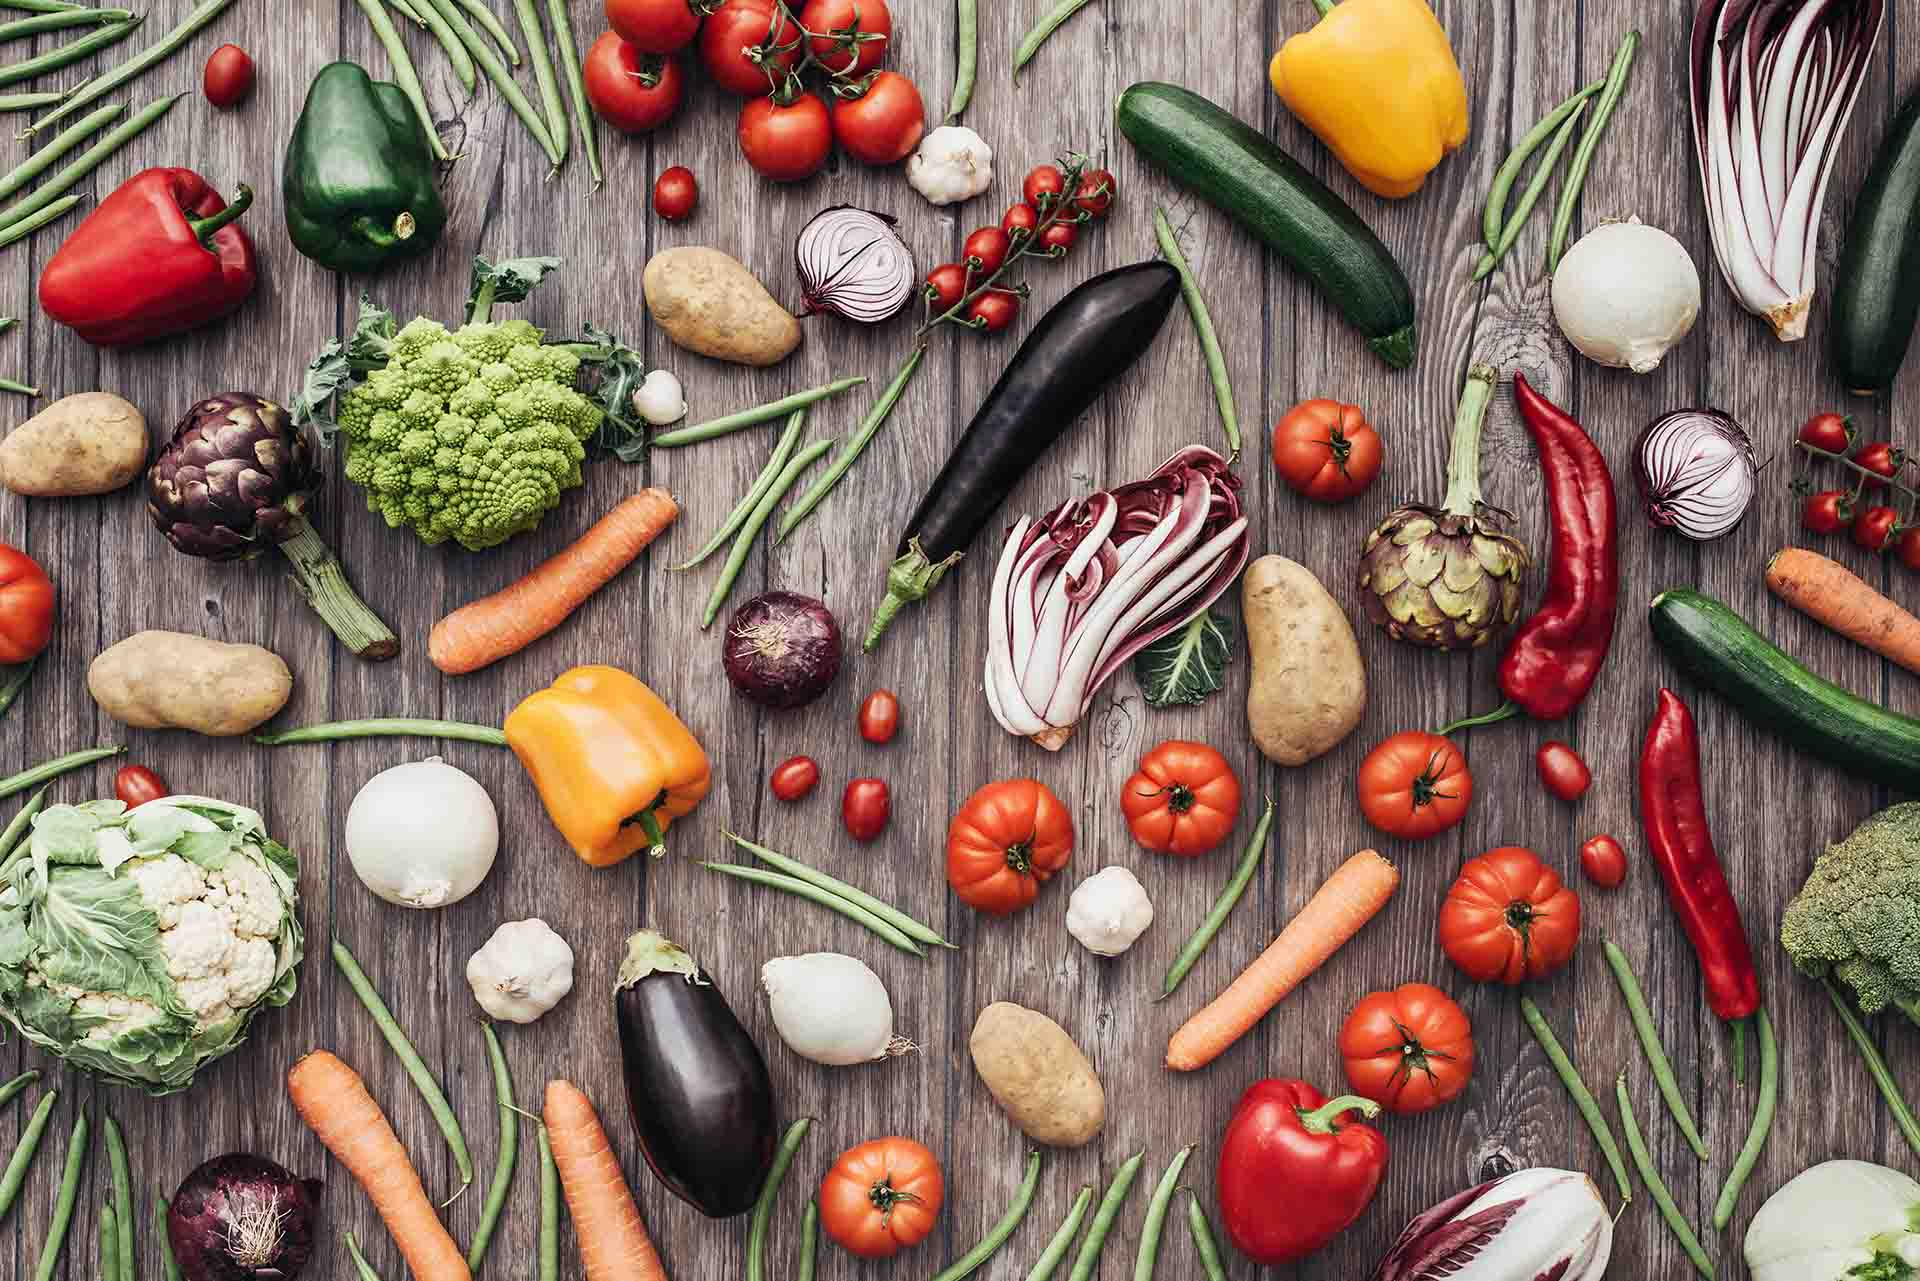 Fresh colorful organic vegetables on a rustic wooden table background.